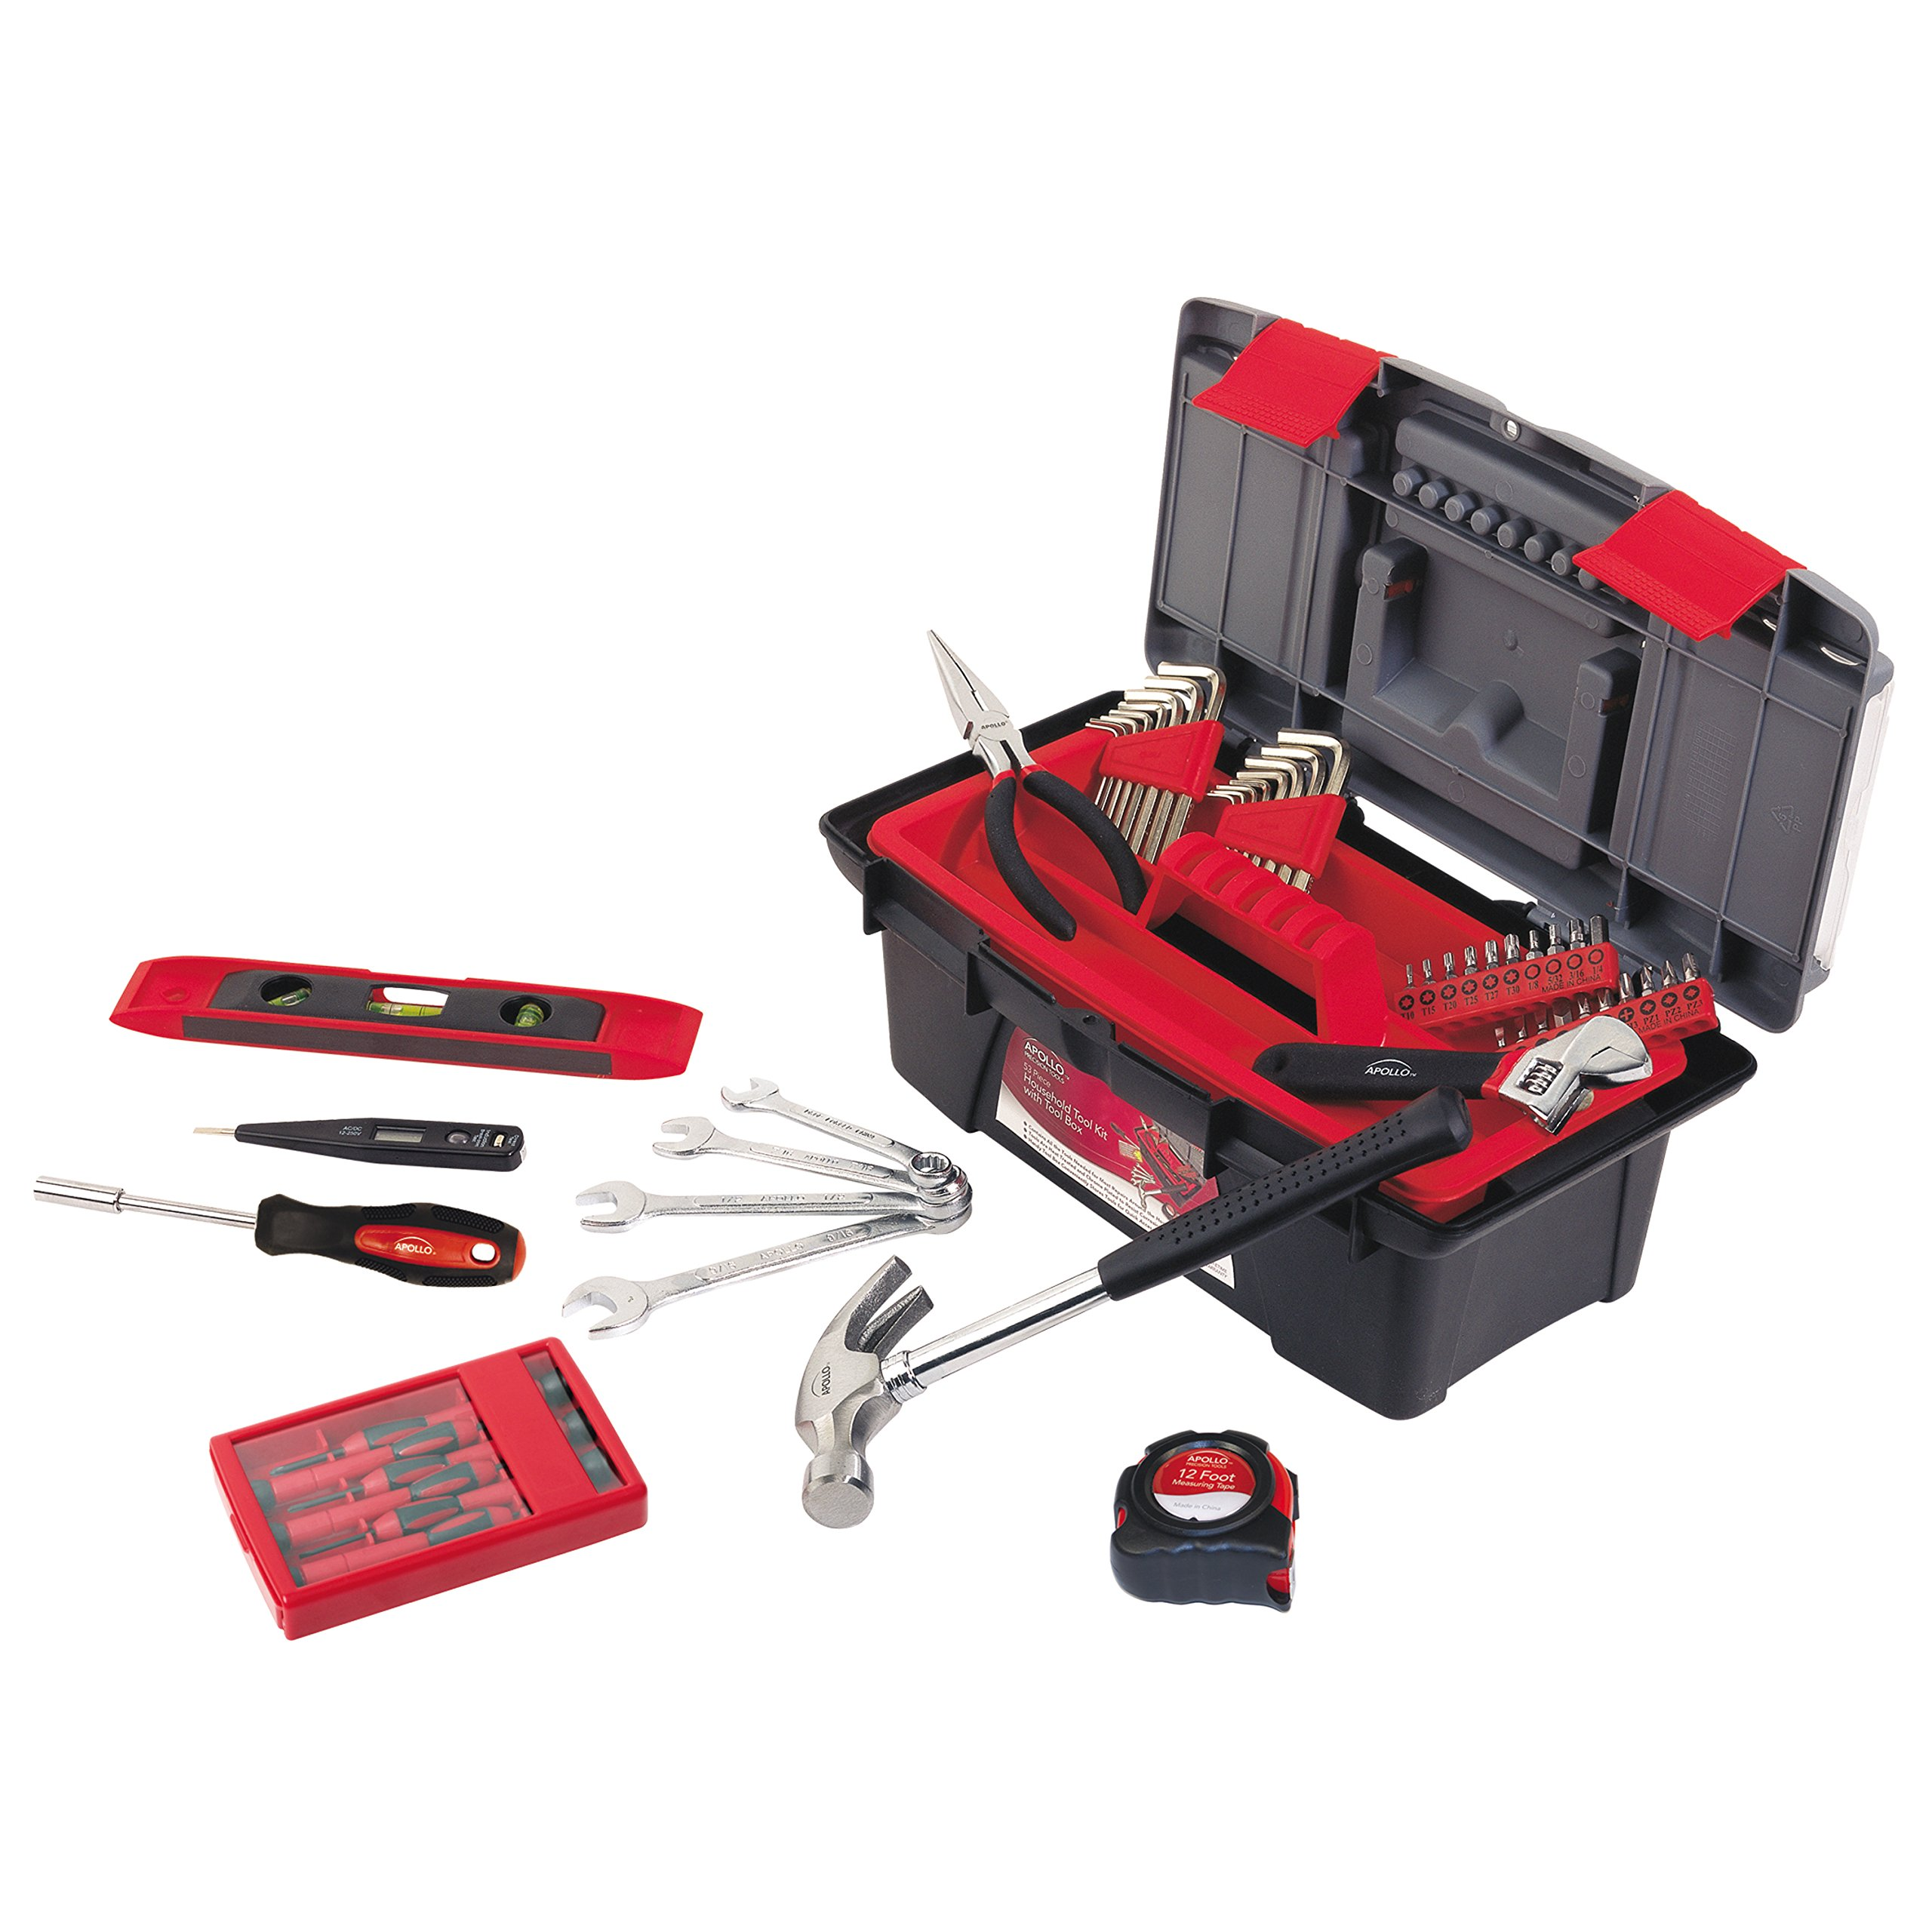 Apollo Tools DT9773 53 Piece Household Tool Set with Wrenches, Precision Screwdriver Set and Most Reached for Hand Tools in Handy Tool Box